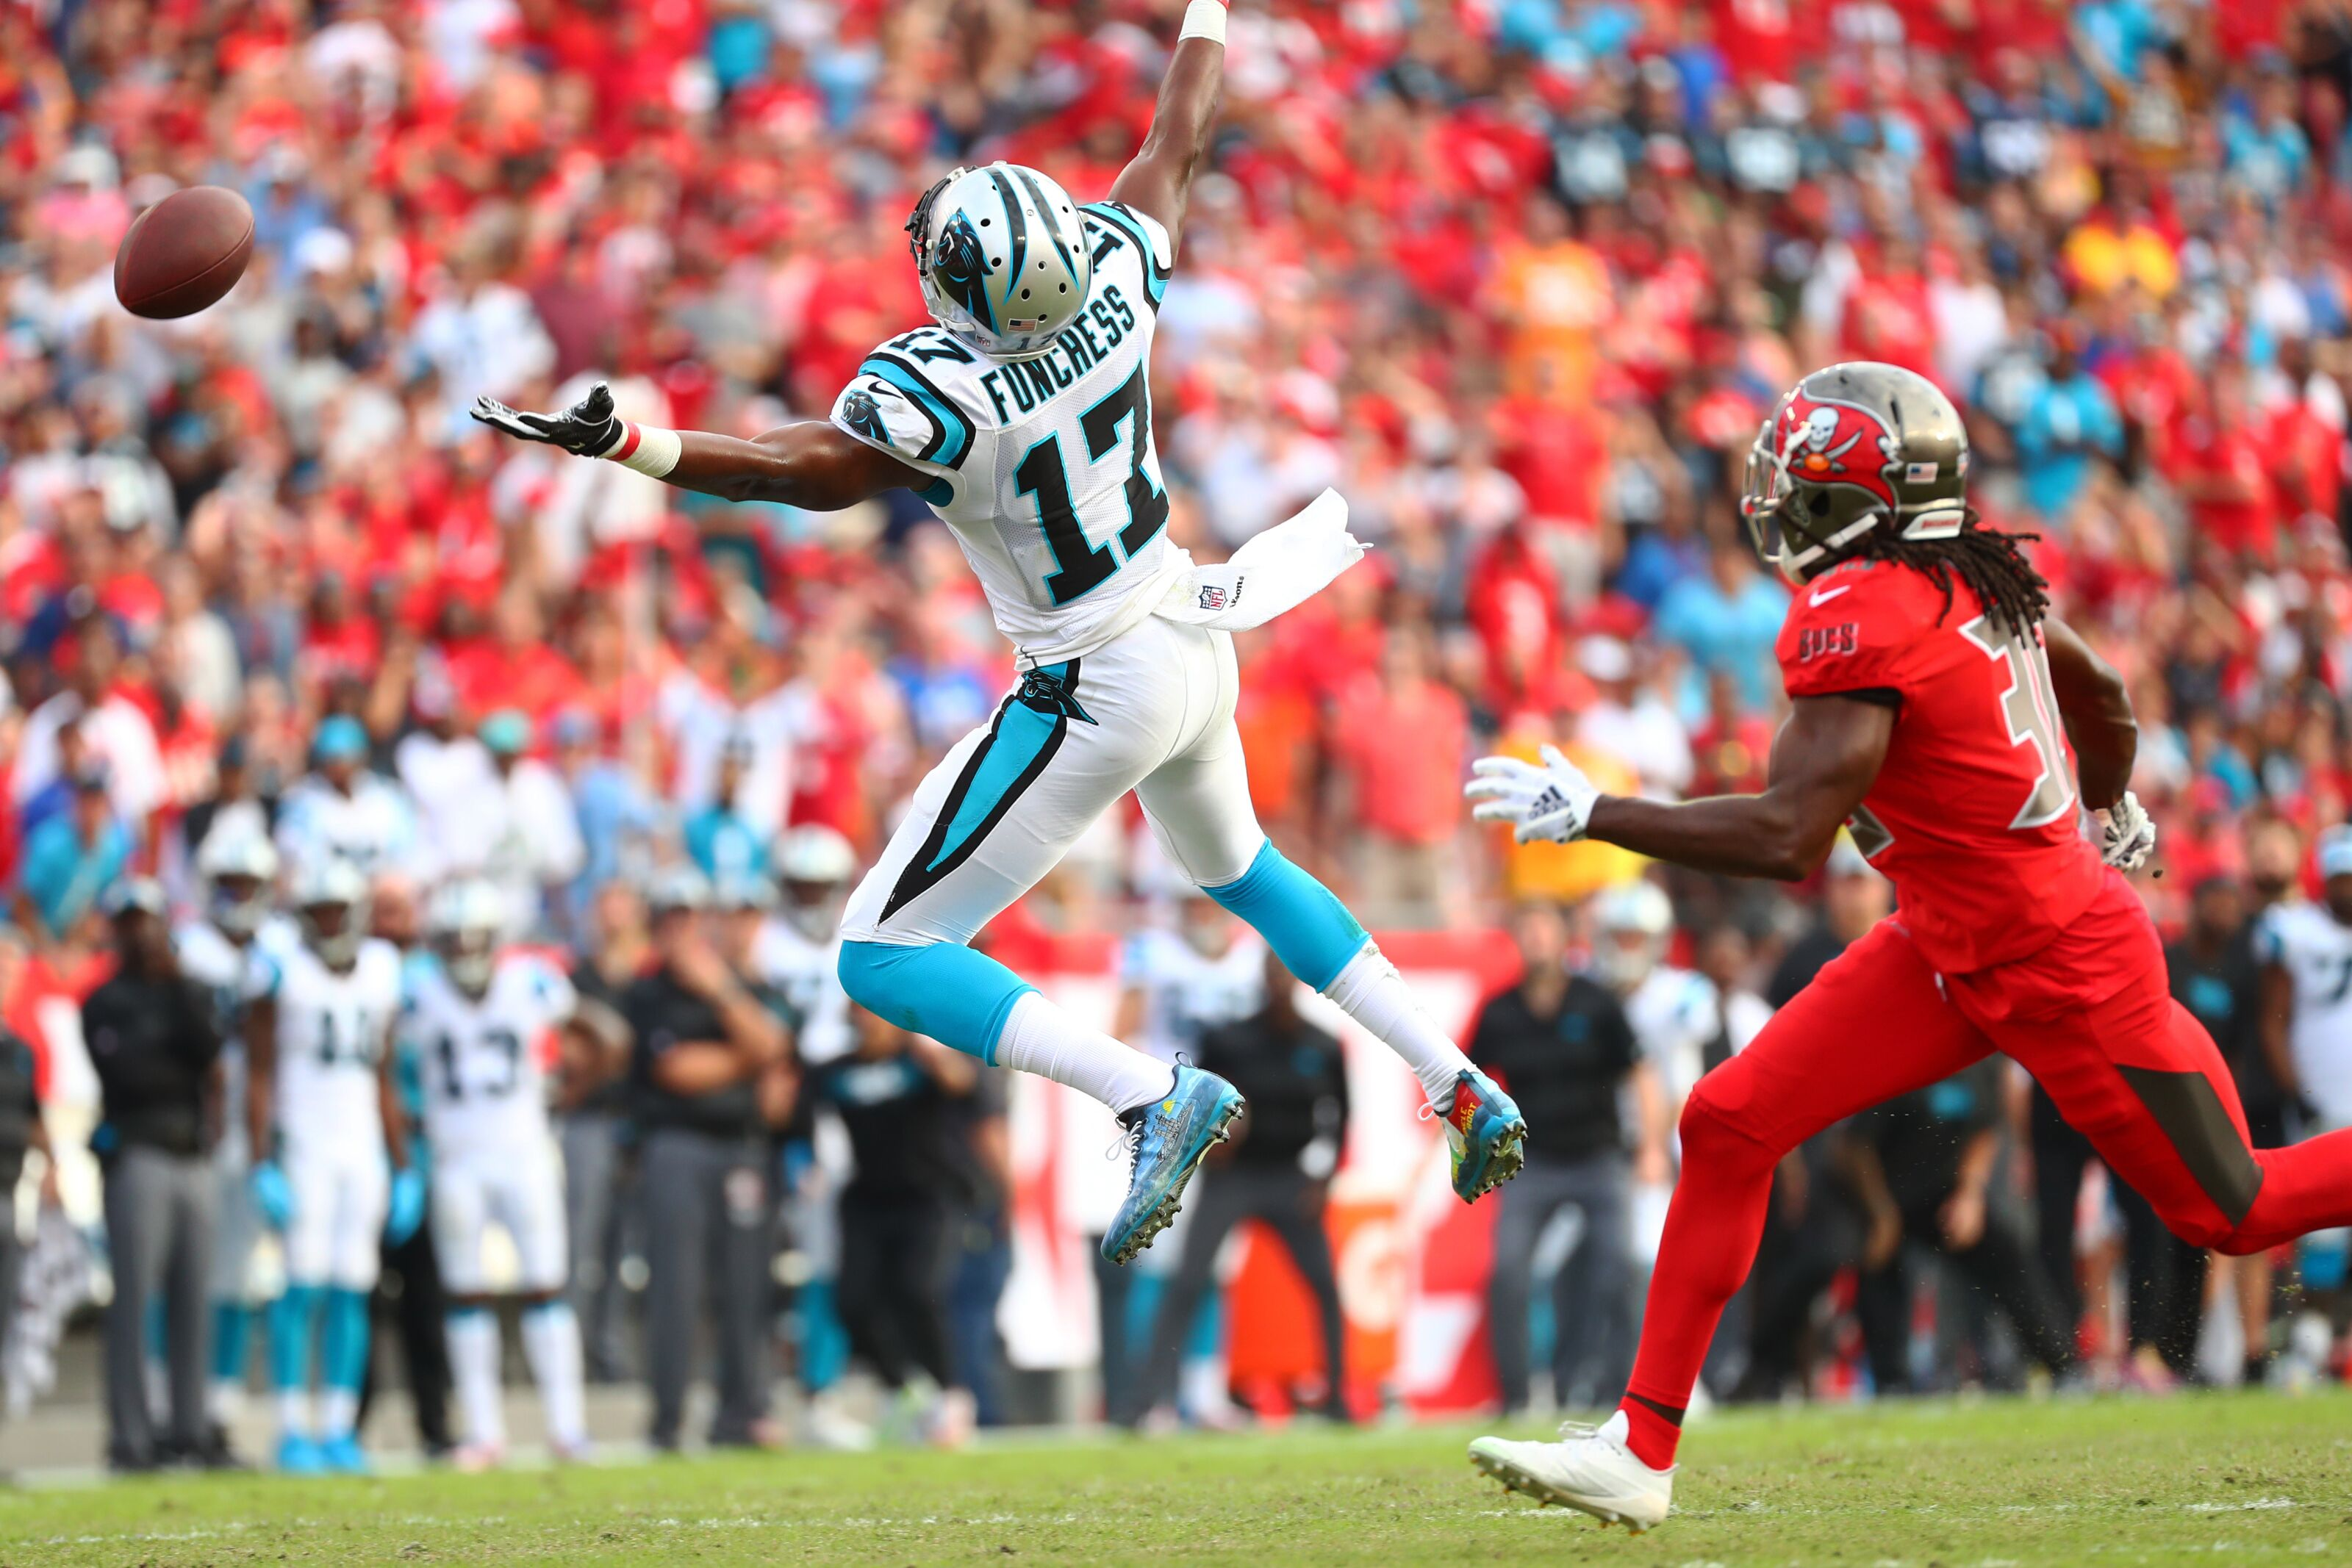 Devin Funchess focused on giving back to community